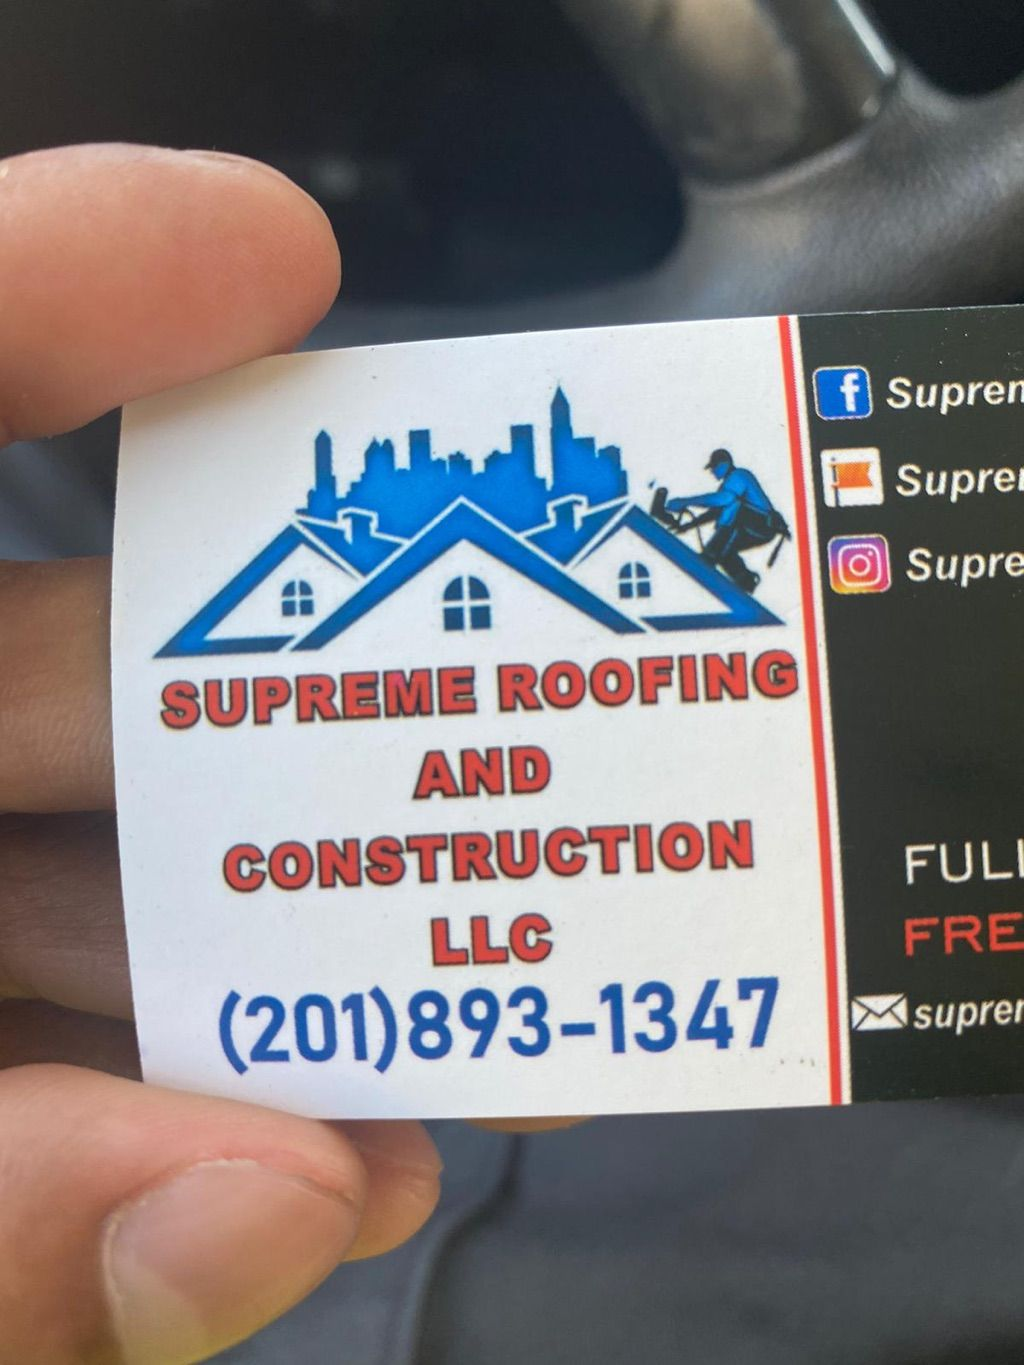 Supreme Roofing&Construction LLC